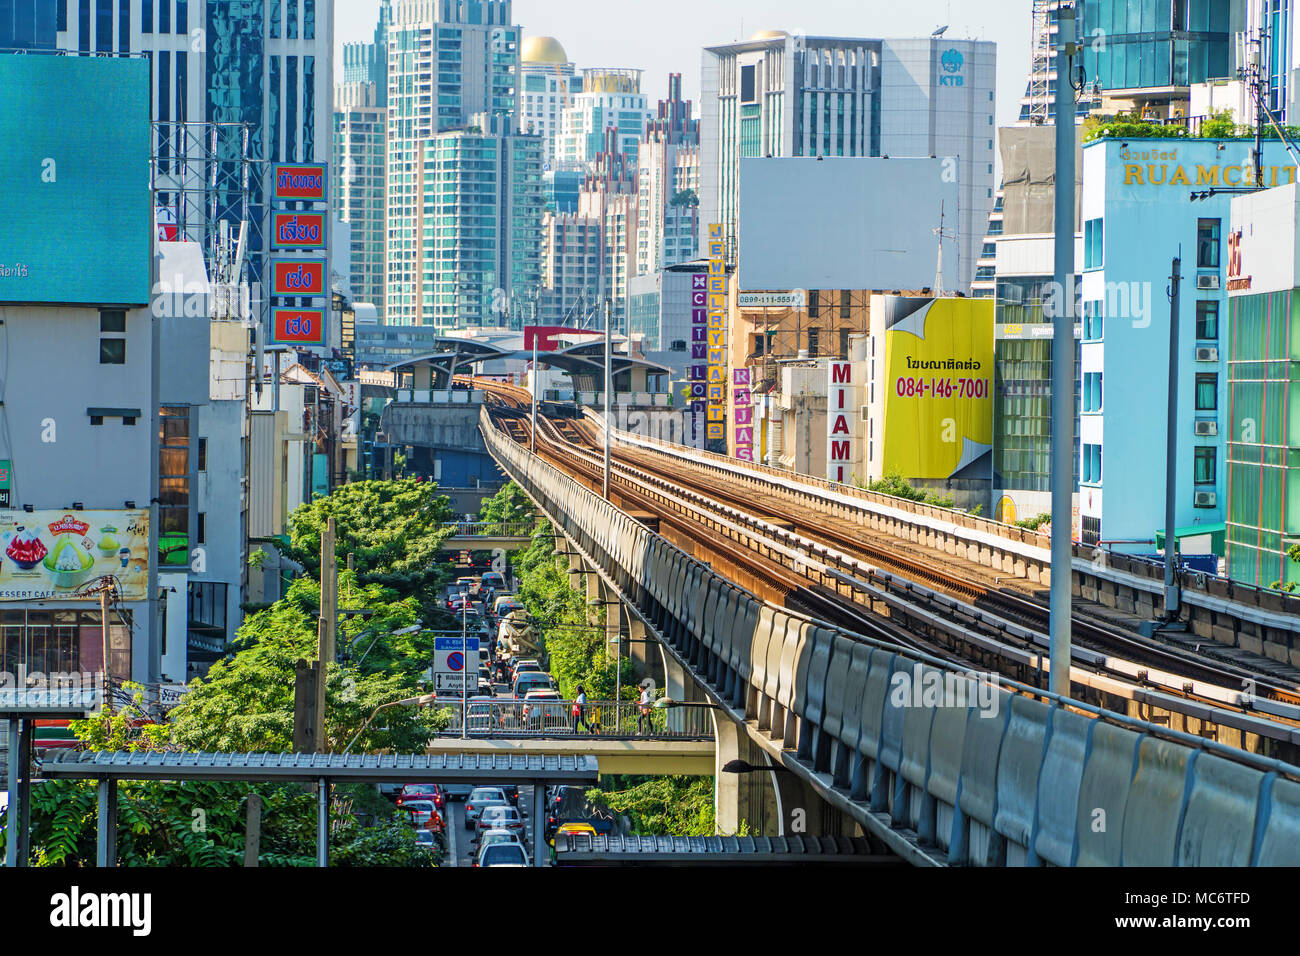 BANGKOK - JANUARY 19, 2017: Bangkok Cityscape, business district with high building and scy train railway at sunshine day on january 19, 2017 in Bangk - Stock Image